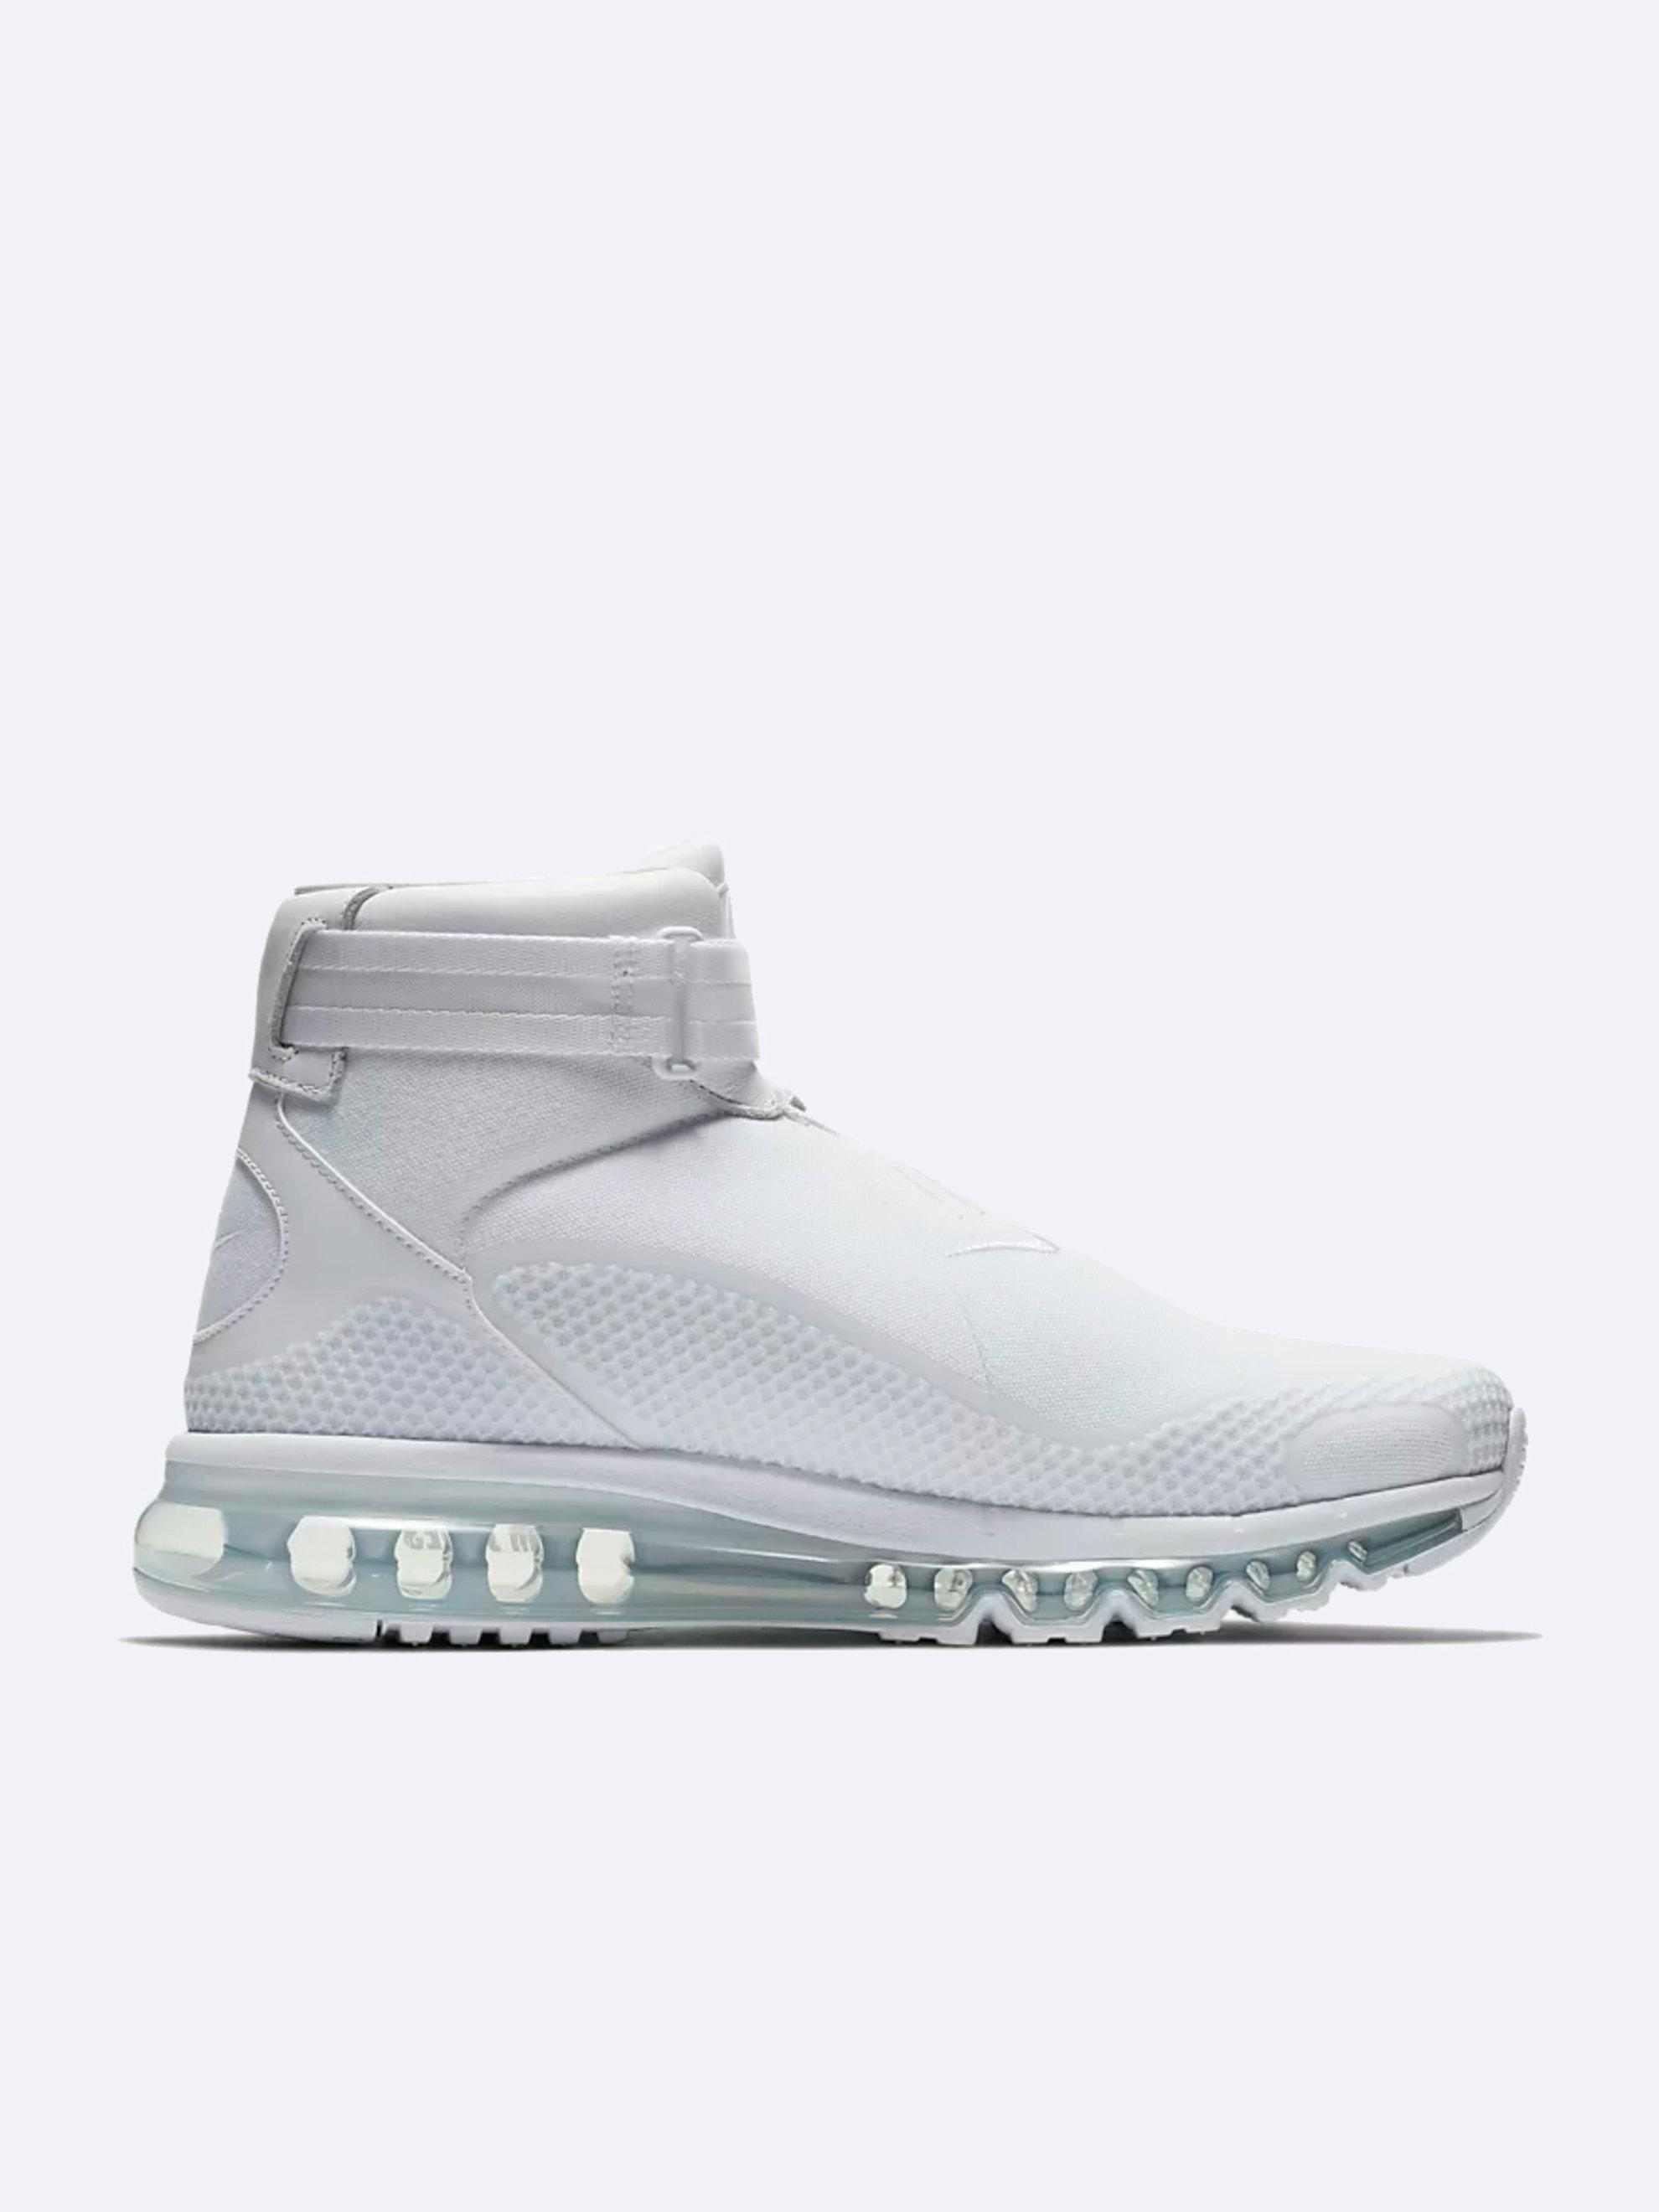 1e49d40c0f91 nike-White-X-Kim-Jones-Air-Max-360-High-white.jpeg